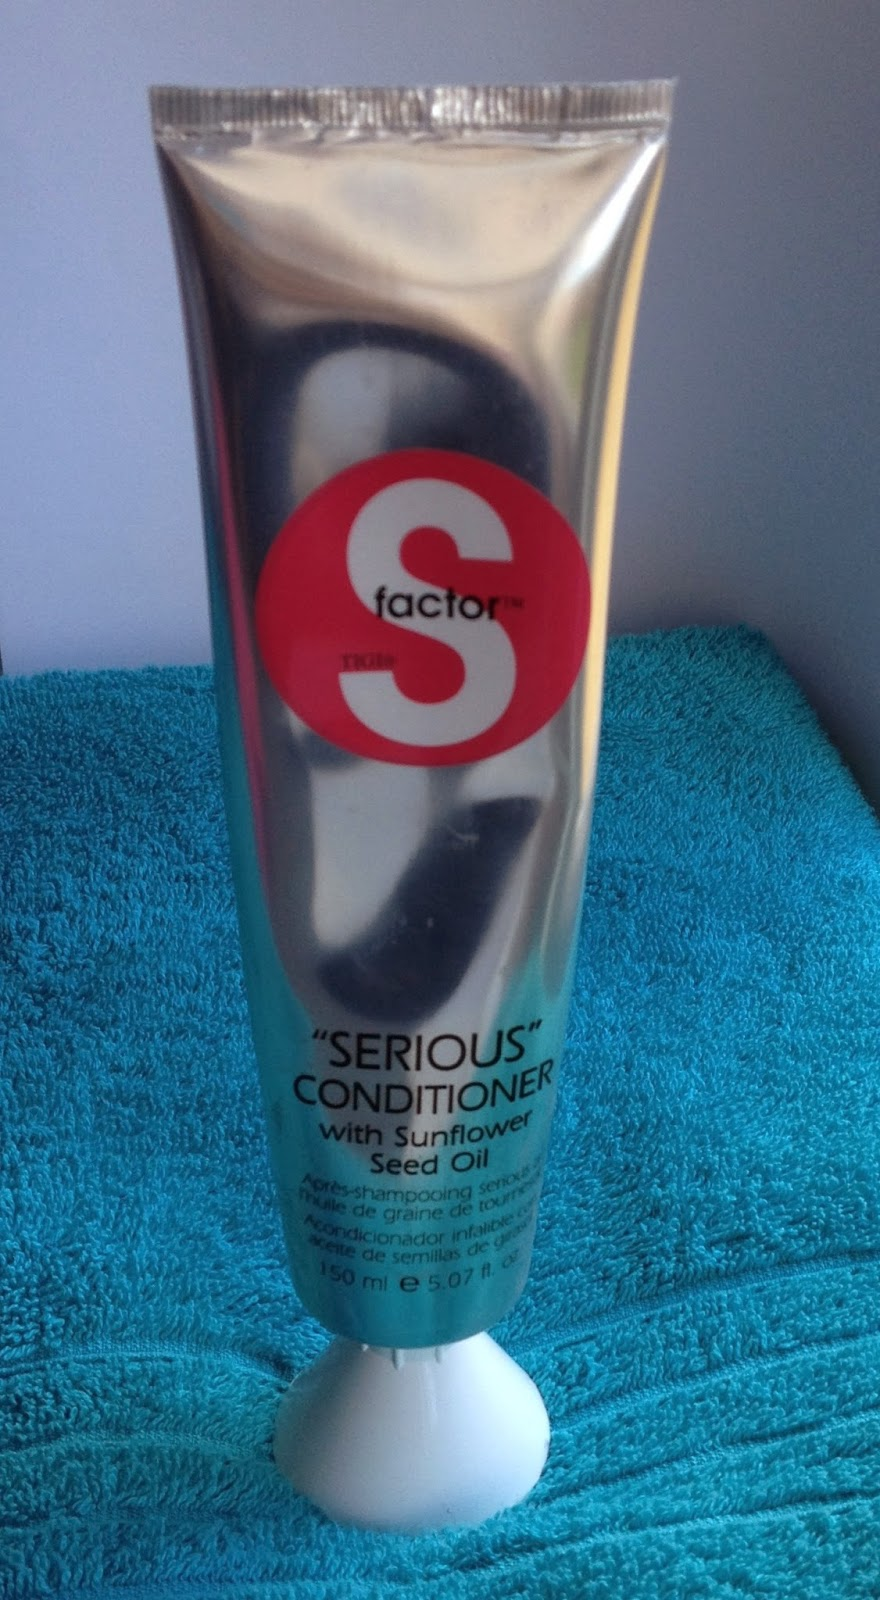 tigi-s-factor-serious-conditioner-review